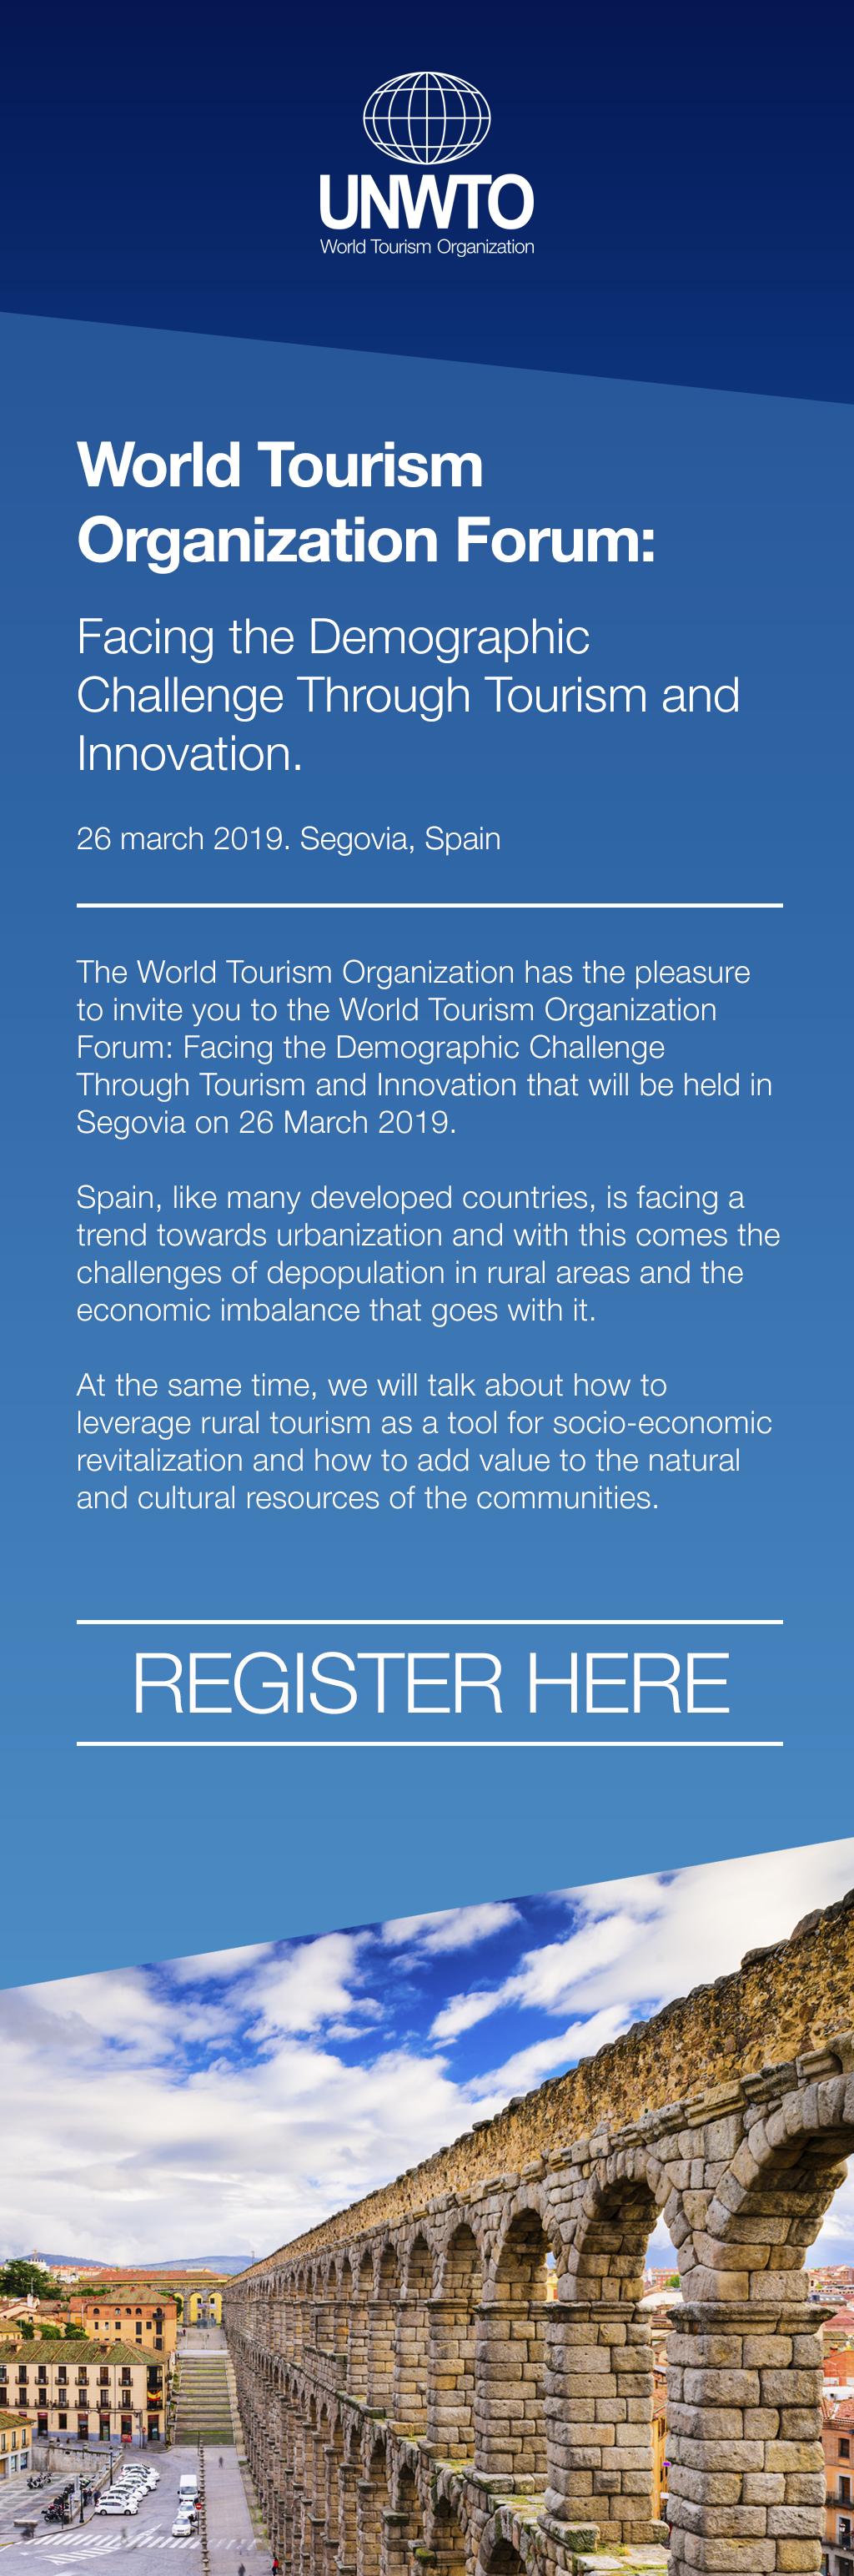 UNWTO Forum: Facing the Demographic Challenge through Tourism and Innovation @ Segovia, Spain